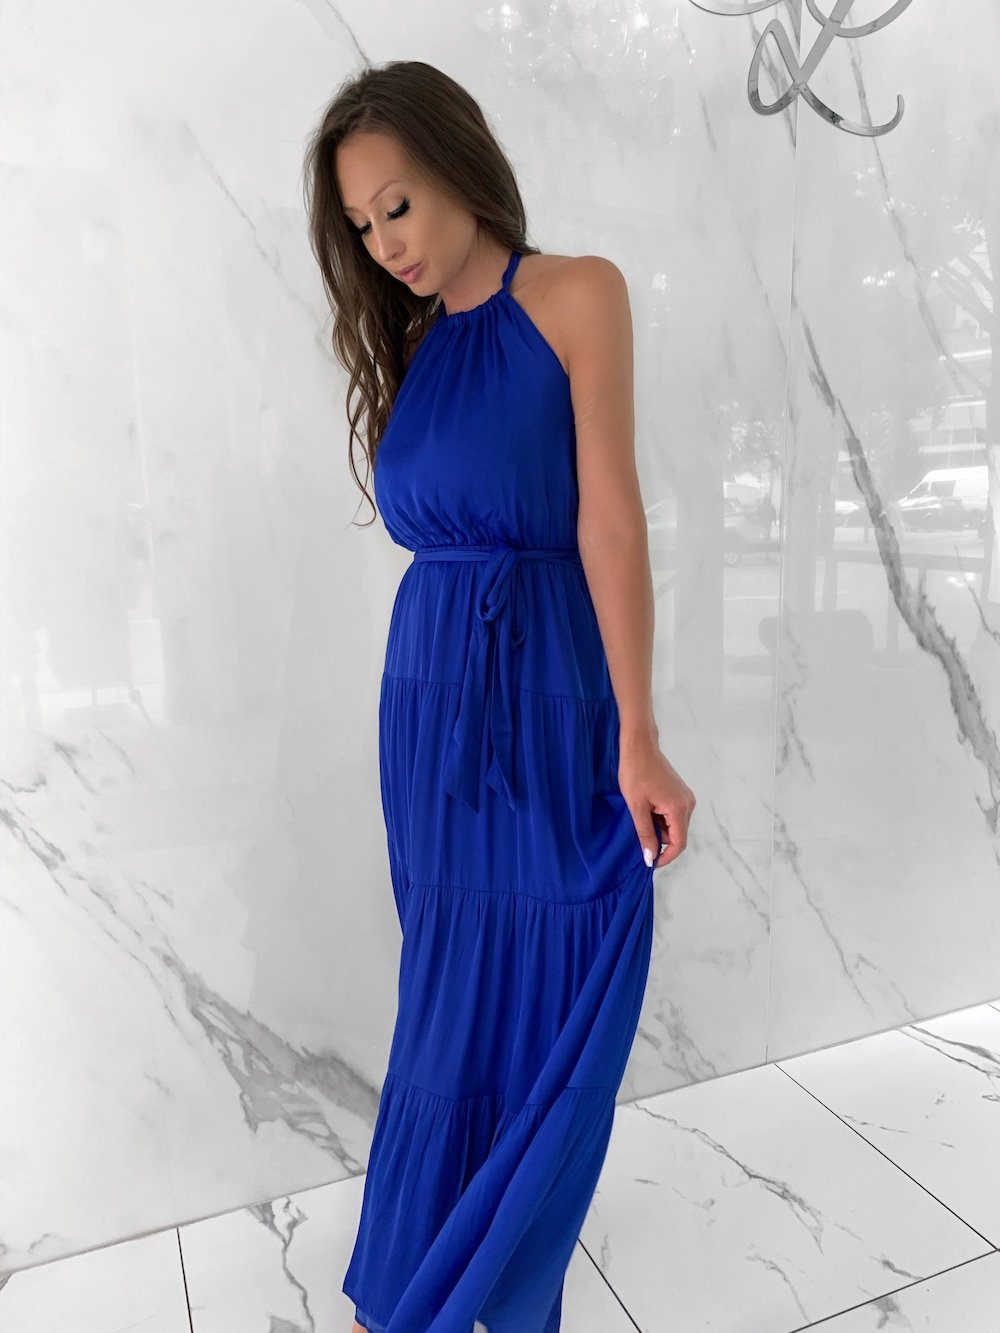 Posie Dress, Women's Royal Blue Dresses